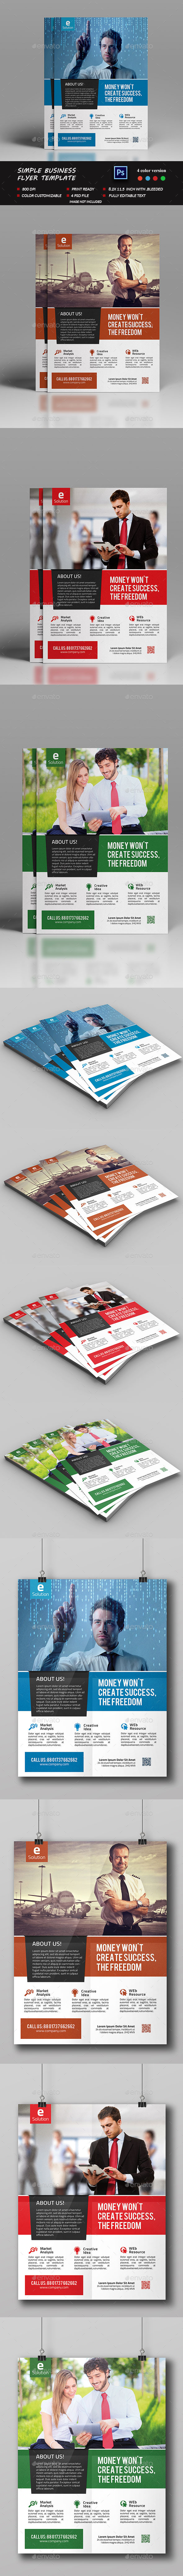 Simple Business Flyer - Corporate Flyers